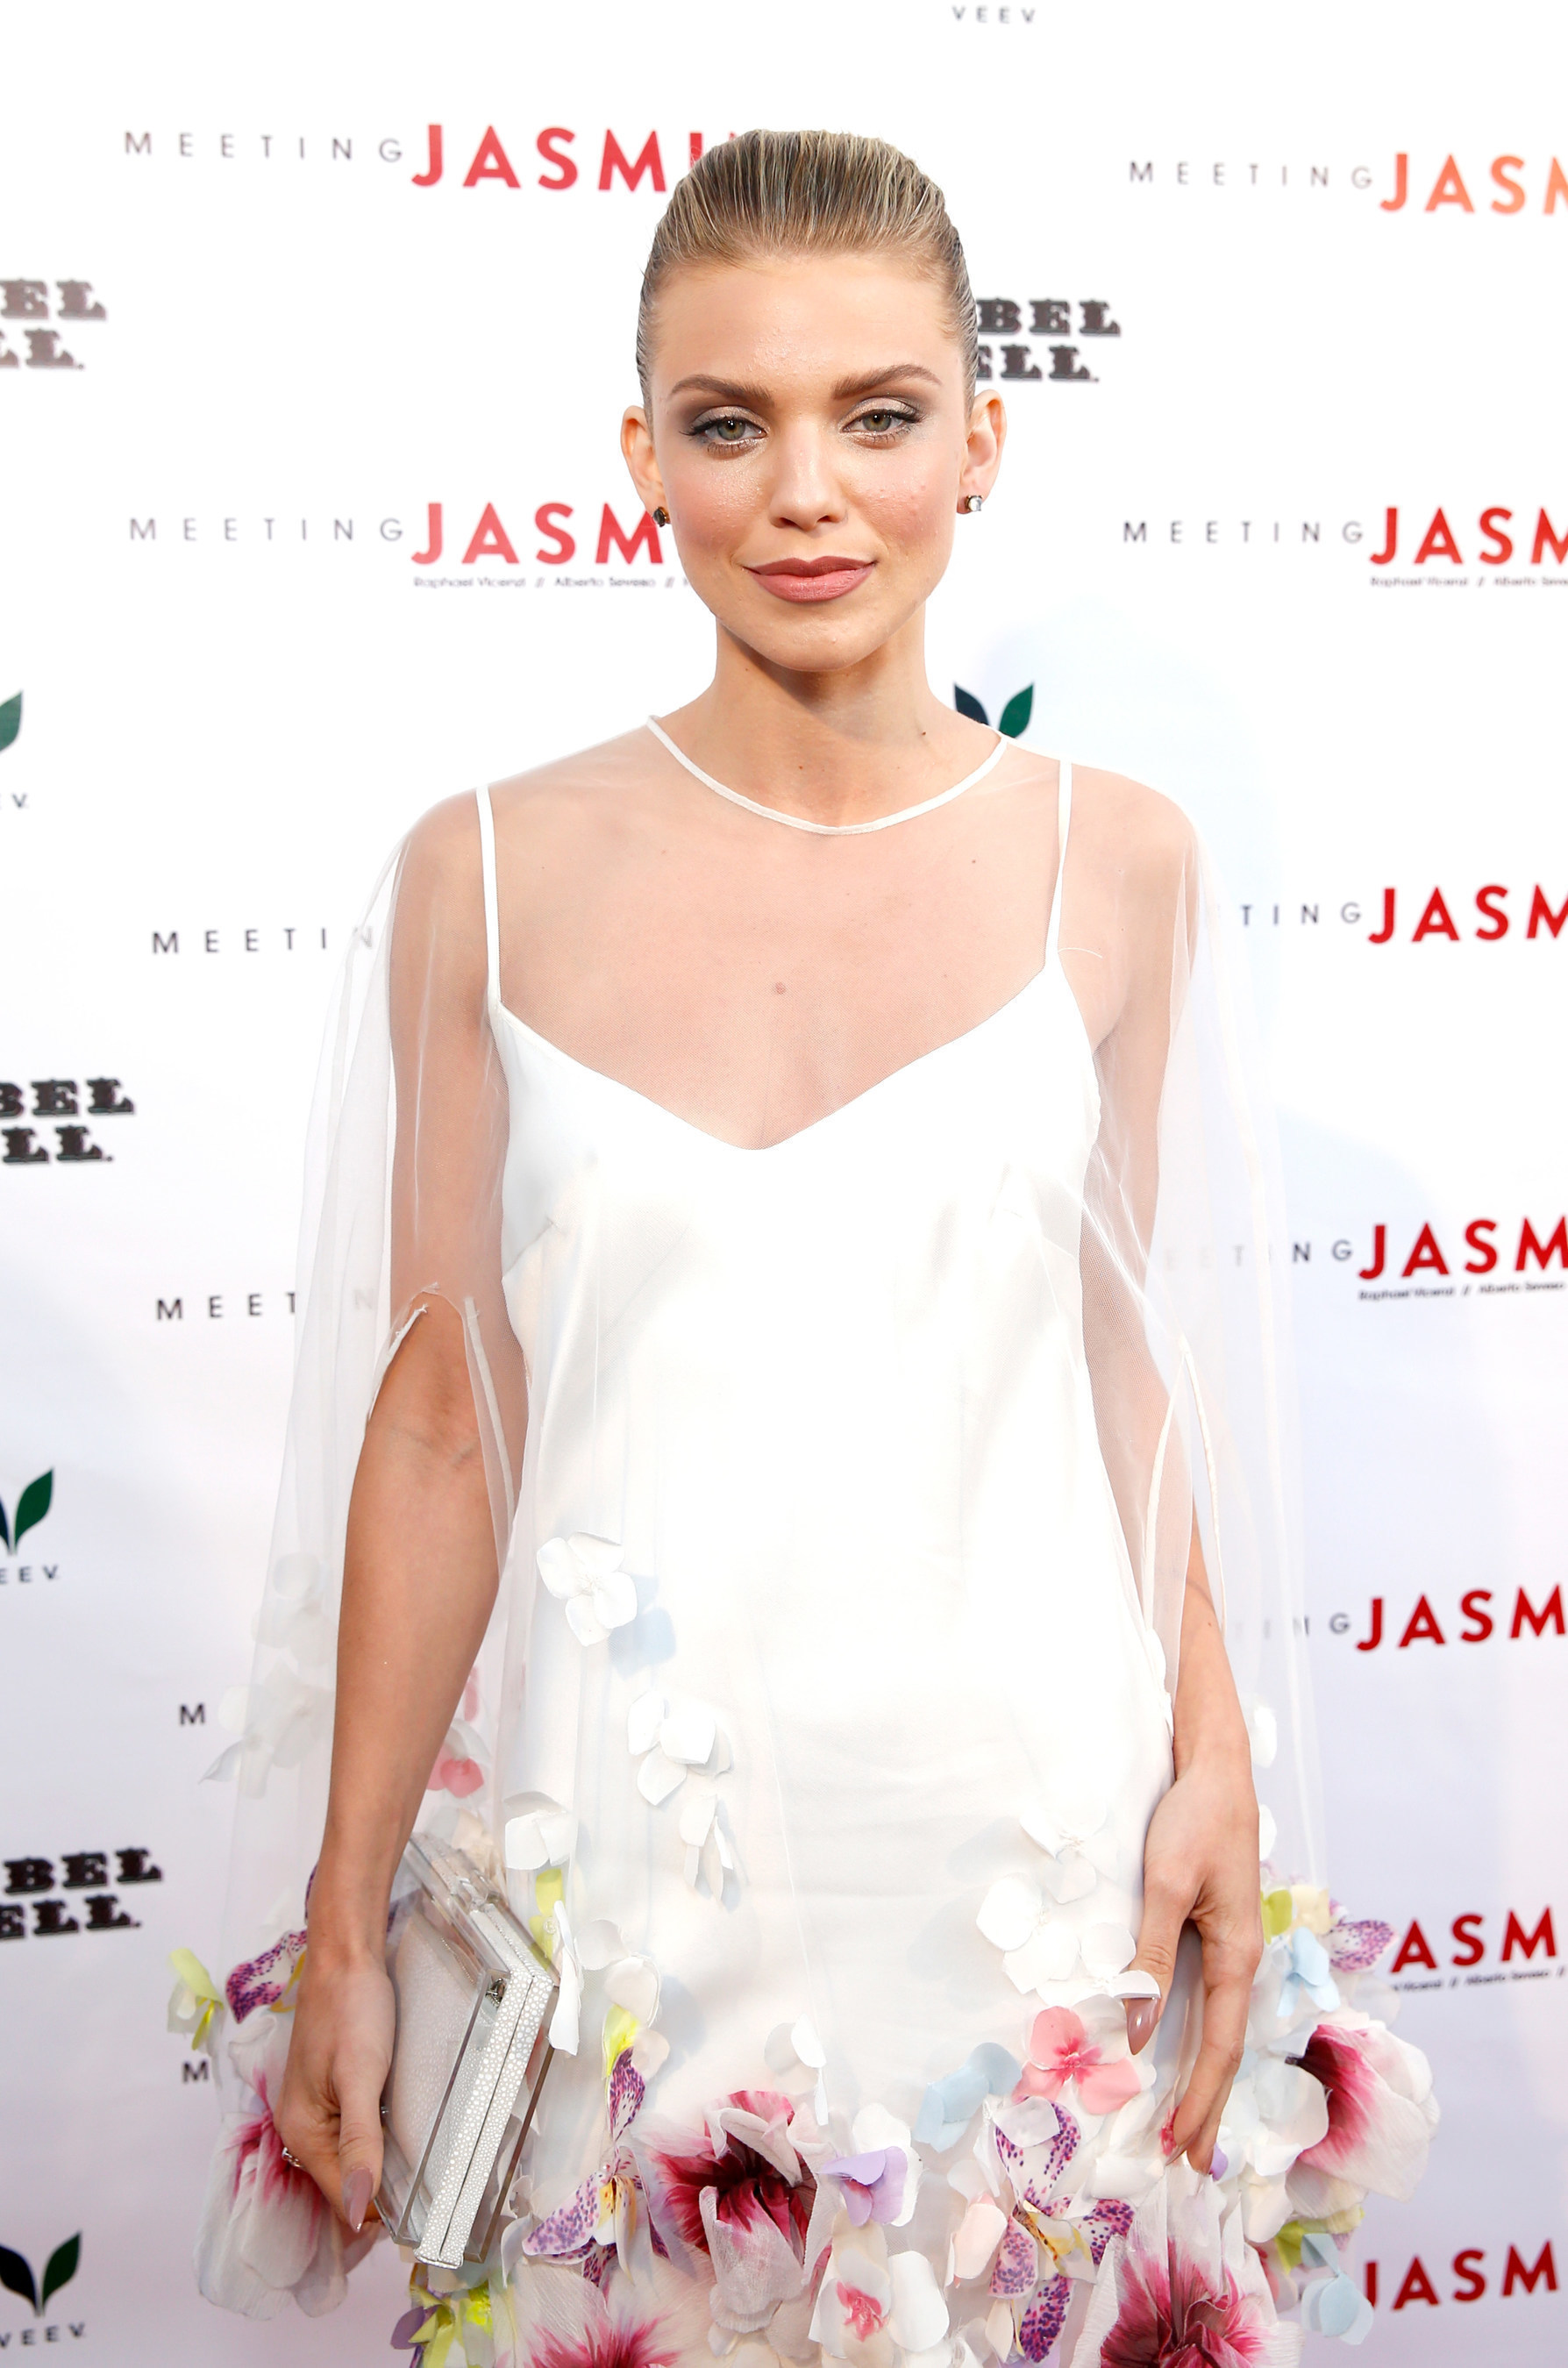 Former 90210 actress, AnnaLynne McCord, looks stunning while arriving to the inaugural Meeting JASMIN fine art exhibition in Los Angeles, CA.